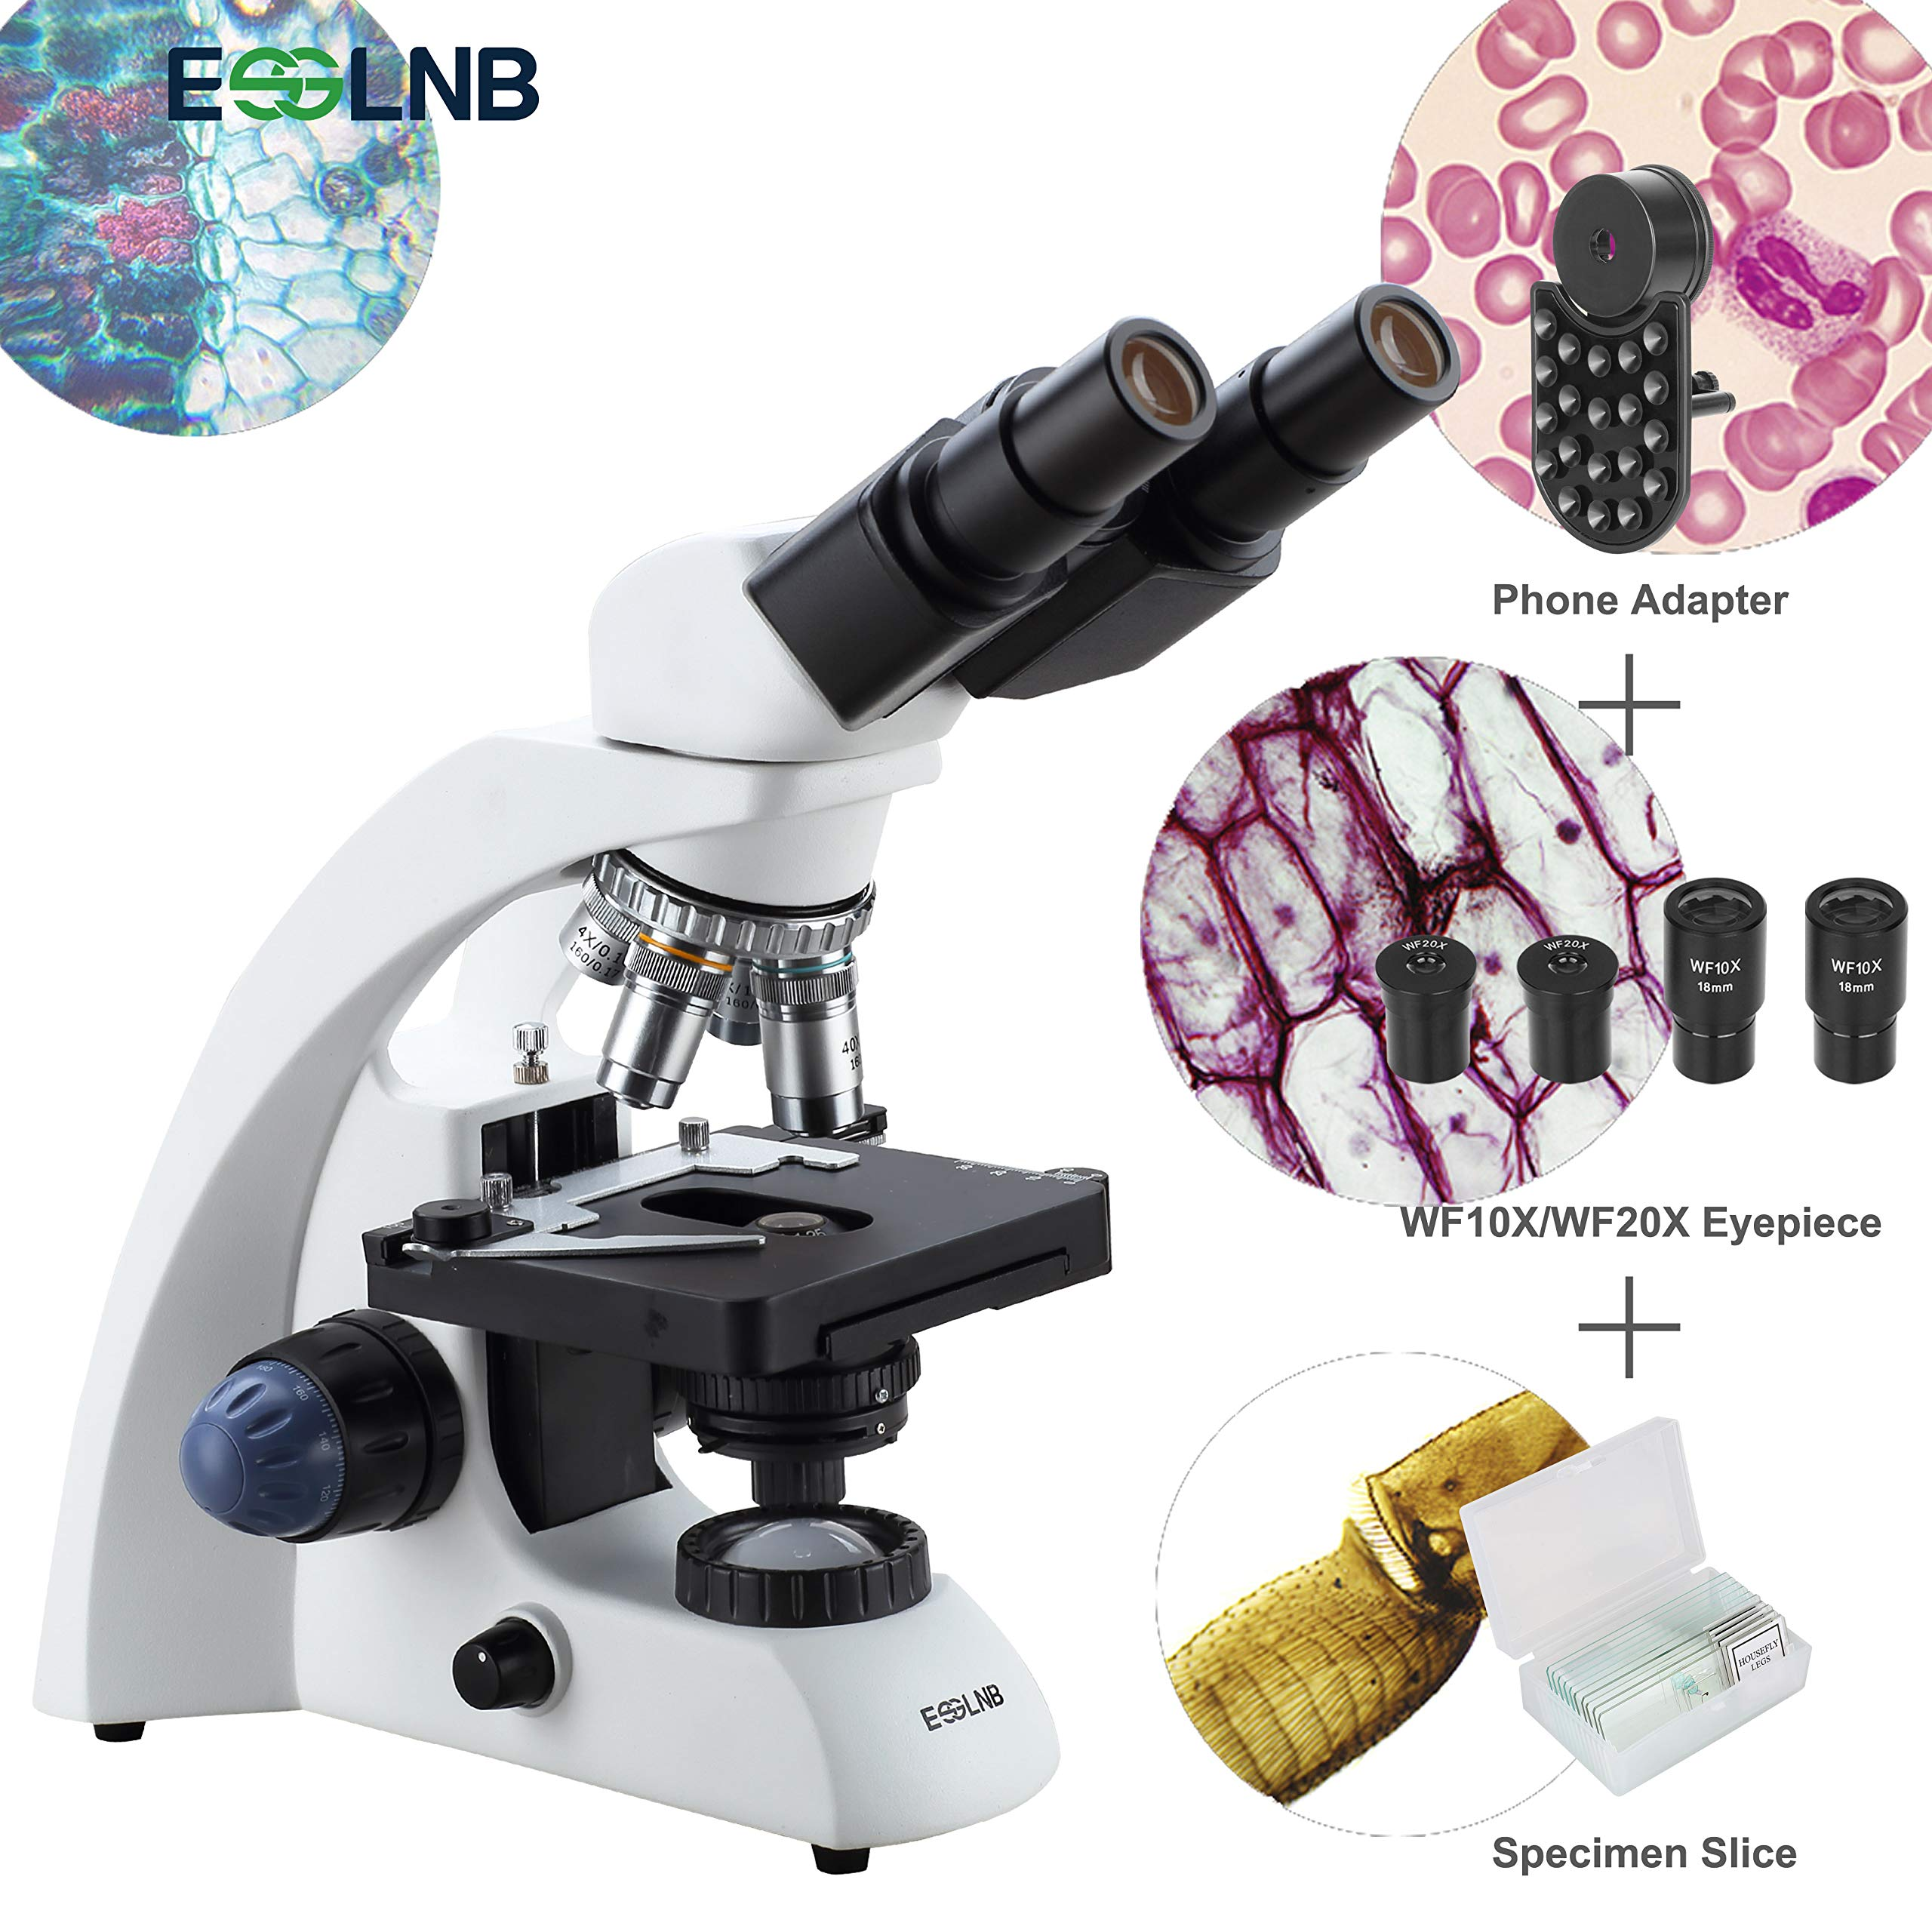 ESSLNB Binocular Microscope with Phone Adapter 2000X Compound Microscope with Slides LED Light Microscope with X-Y Double Layer Mechanical Stage NA1.25 Abbe Condenser Oil Immersion Objective by ESSLNB